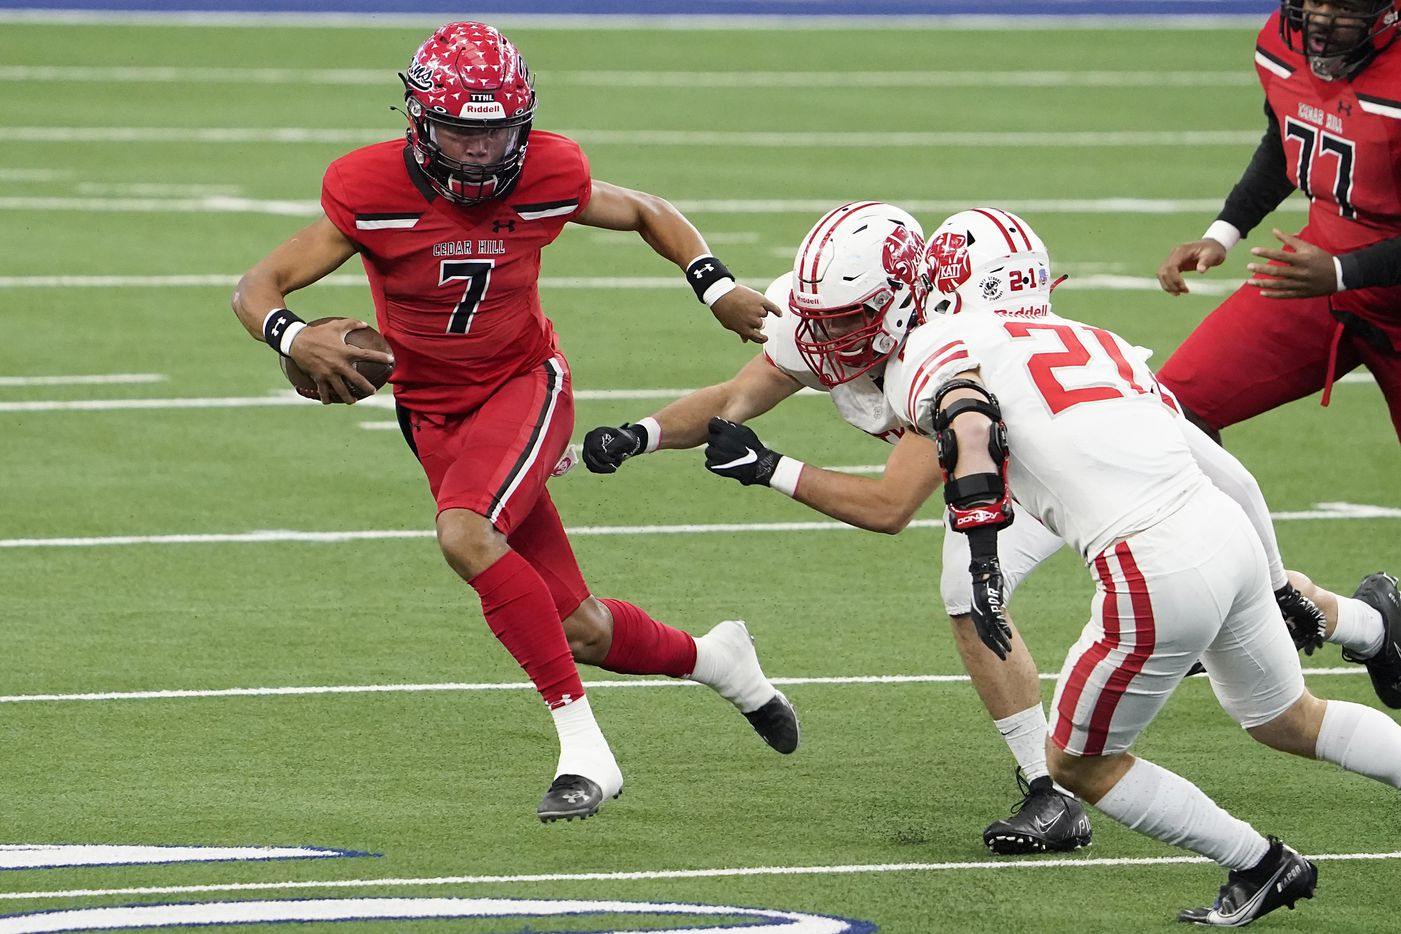 Cedar Hill quarterback Kaidon Salter (7) is chased down by Katy defensive lineman Cayde Robertson and Carson Marshall (21) during the first half of the Class 6A Division II state football championship  game at AT&T Stadium on Saturday, Jan. 16, 2021, in Arlington, Texas.